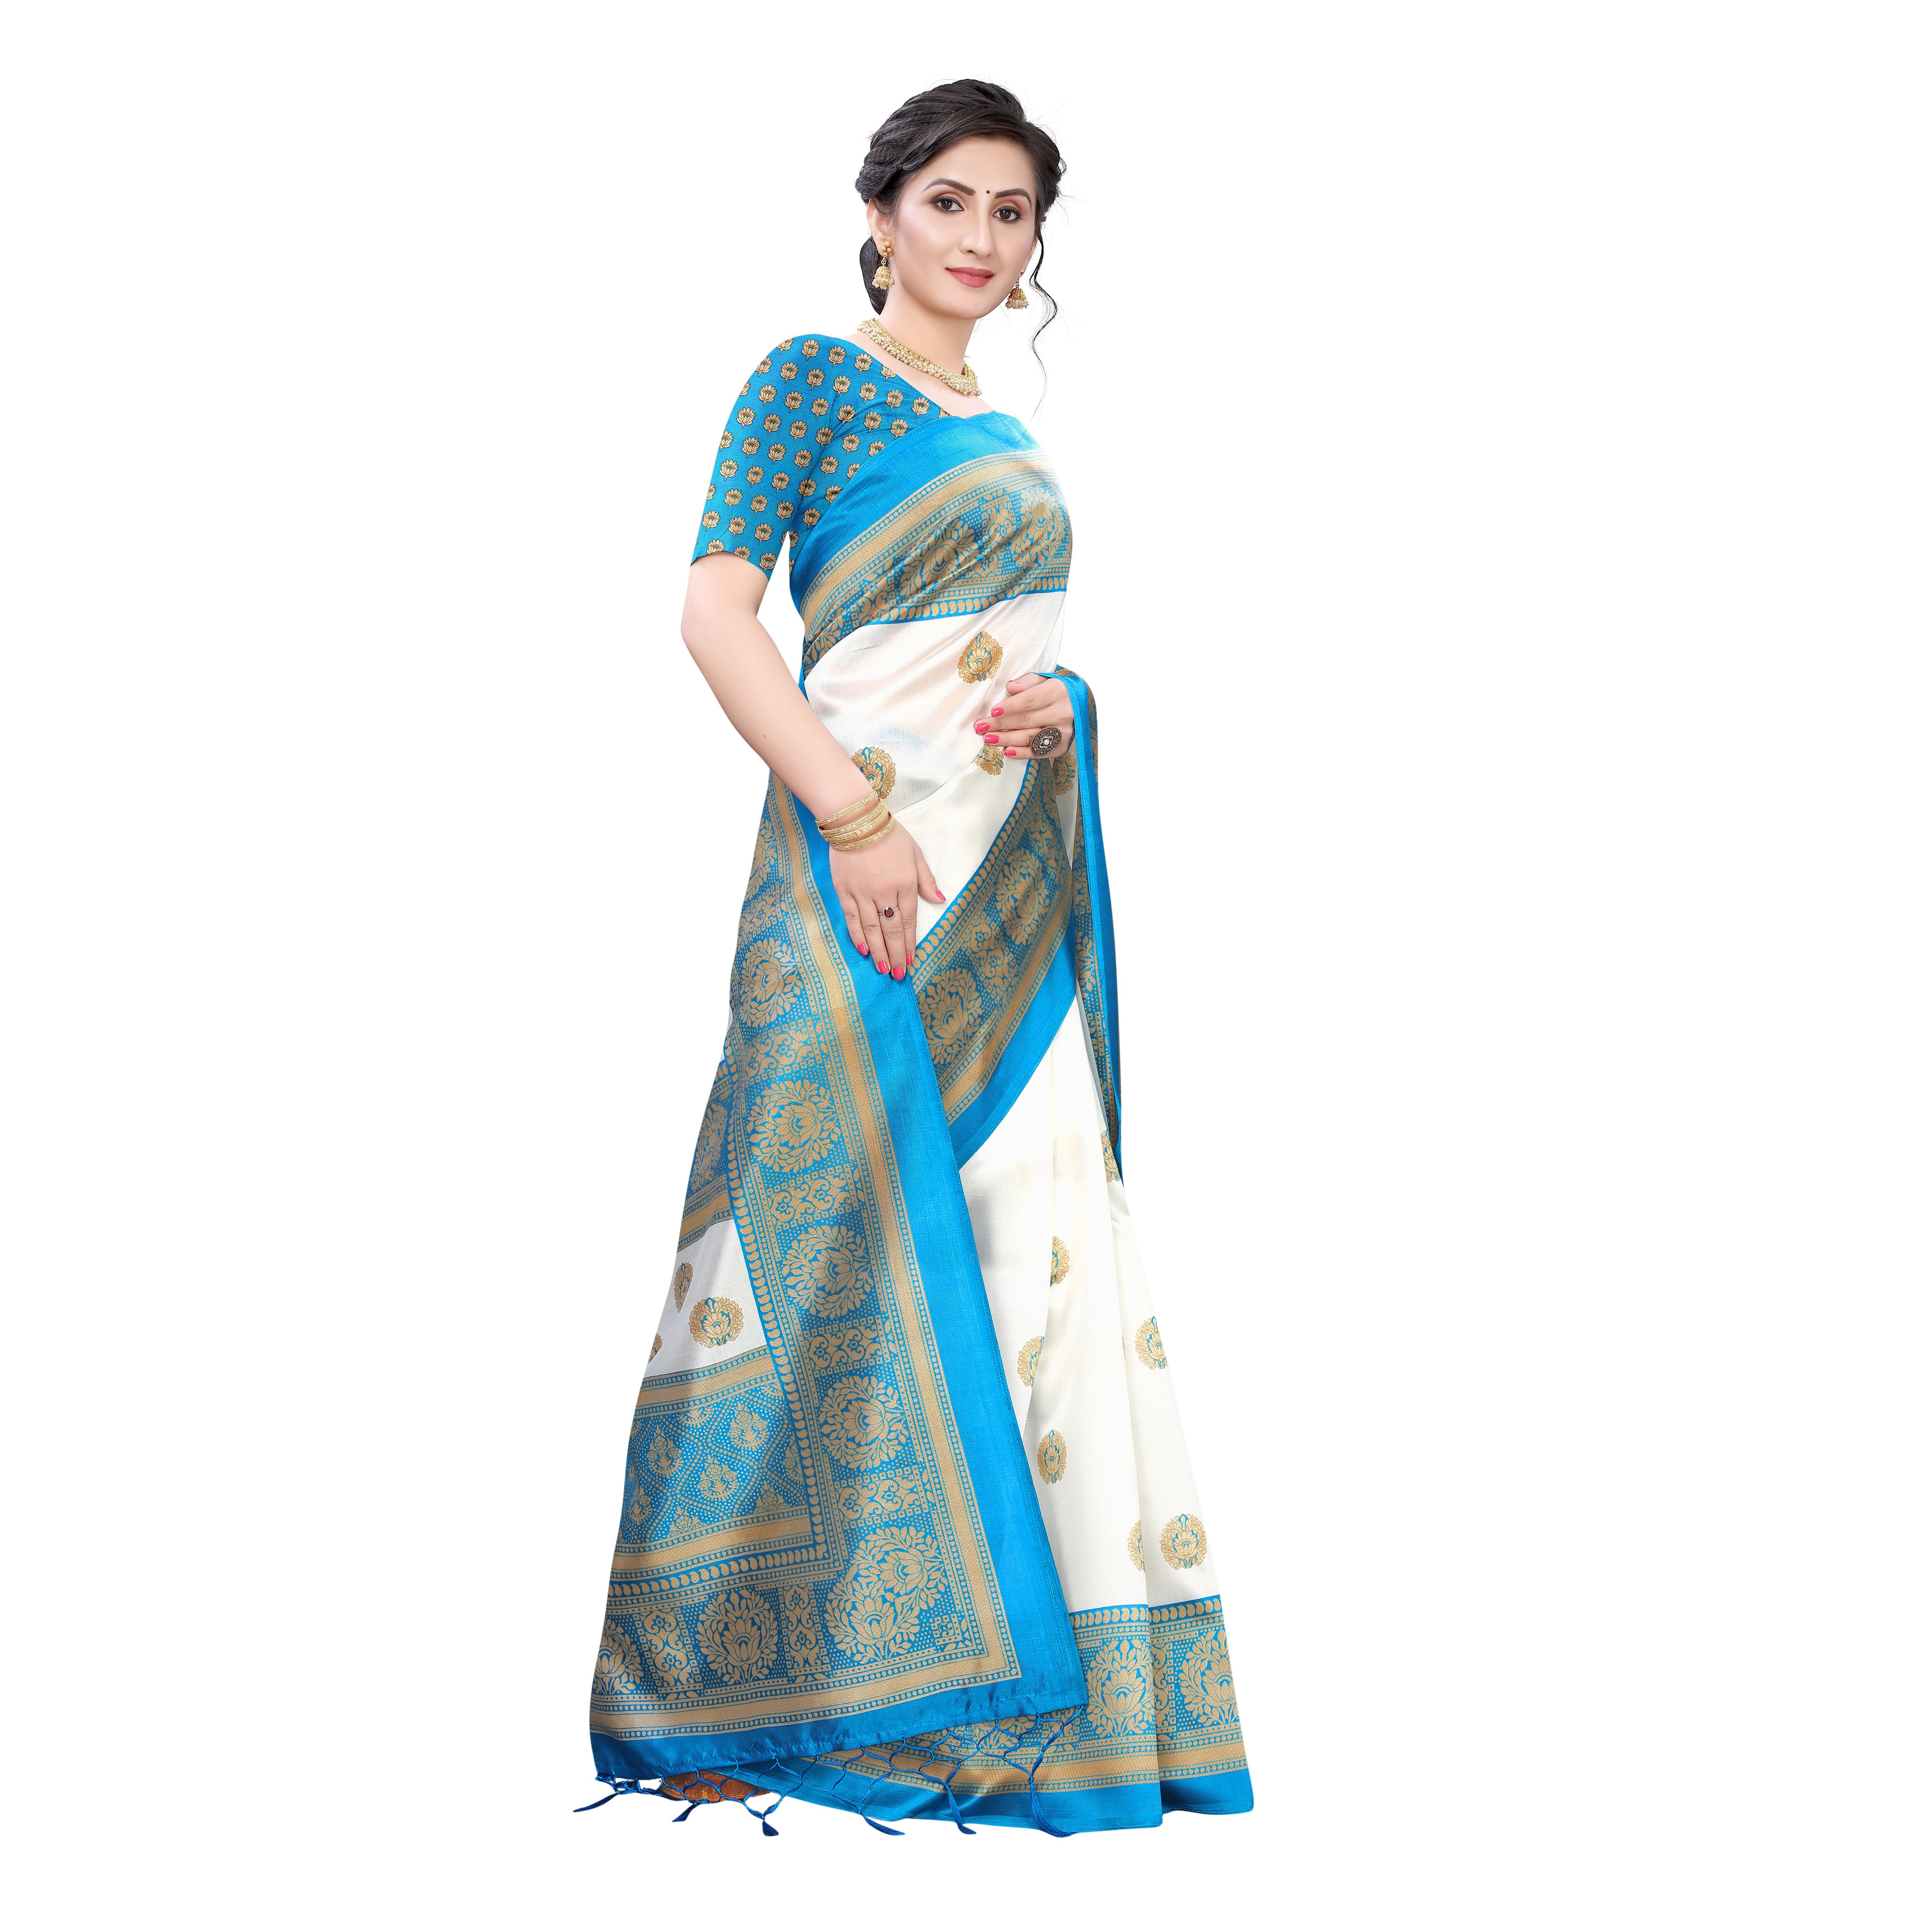 Arresting White-Turquoise Colored Festive Wear Printed Art Silk Saree With Tassels